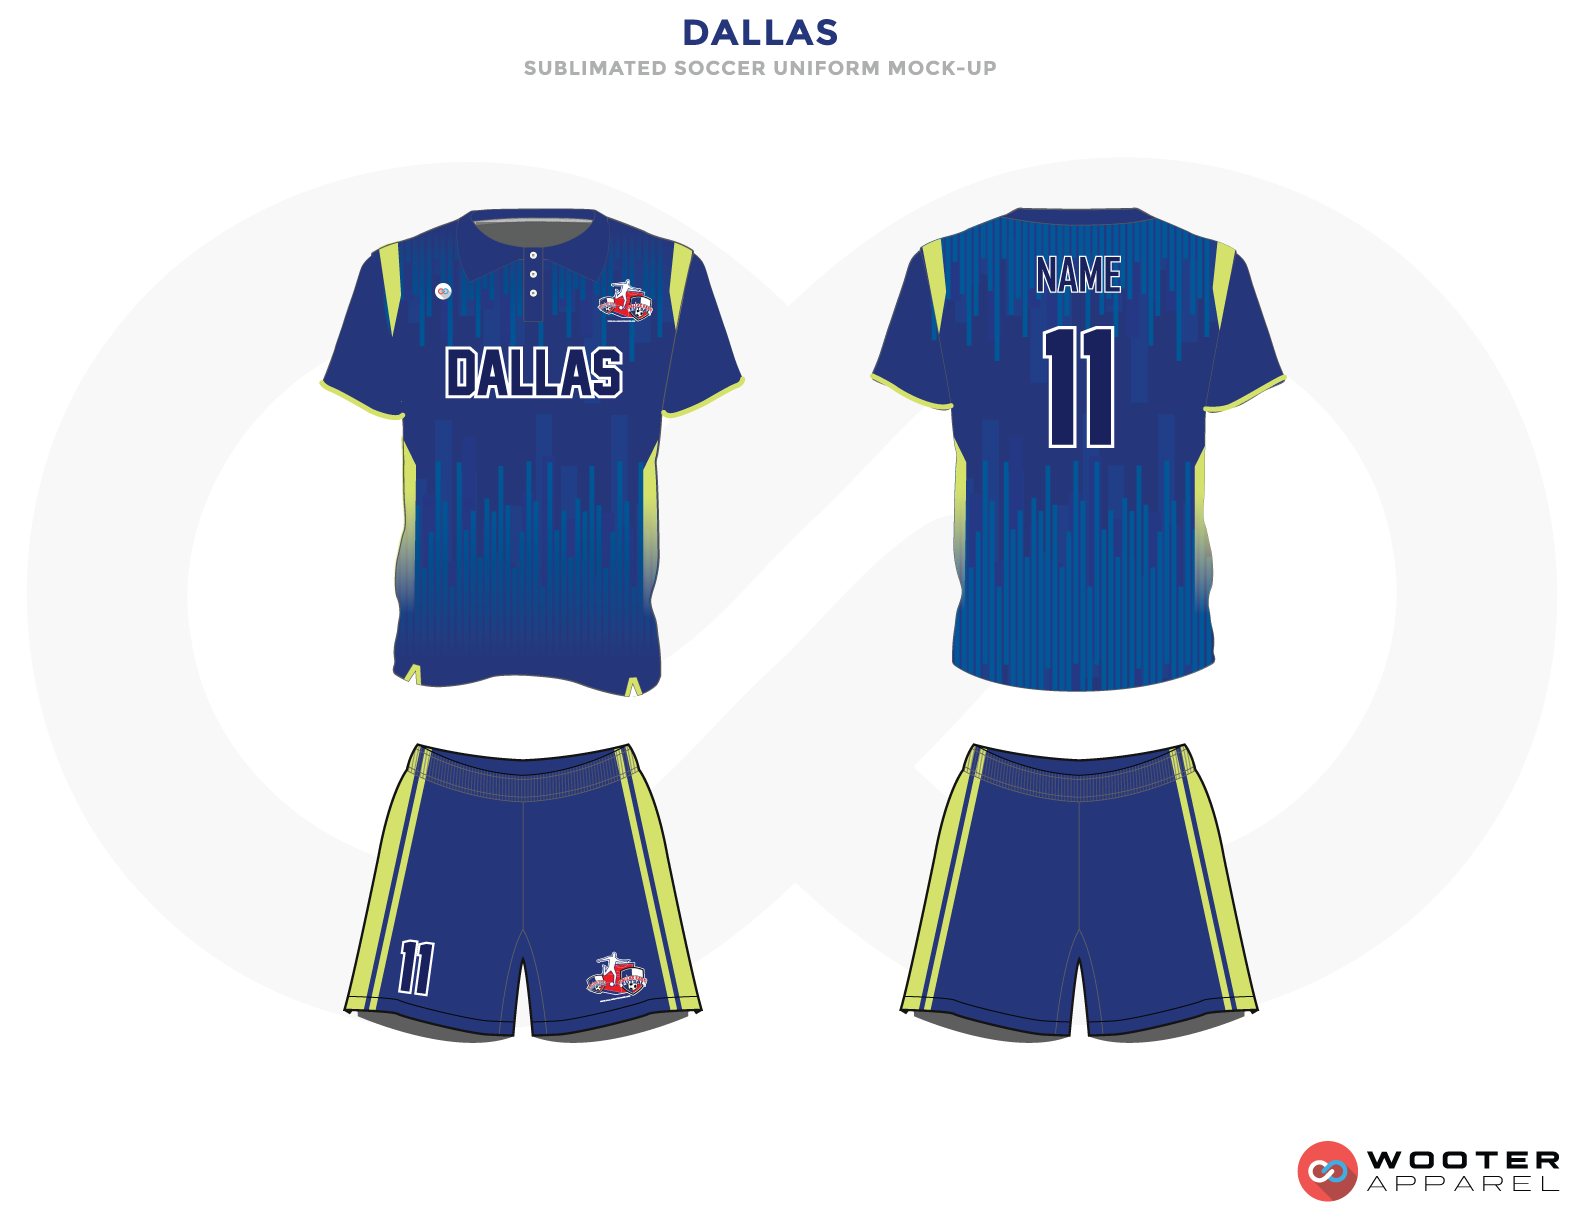 Dallas Blue and Green Soccer Uniform, Jersey and Shorts